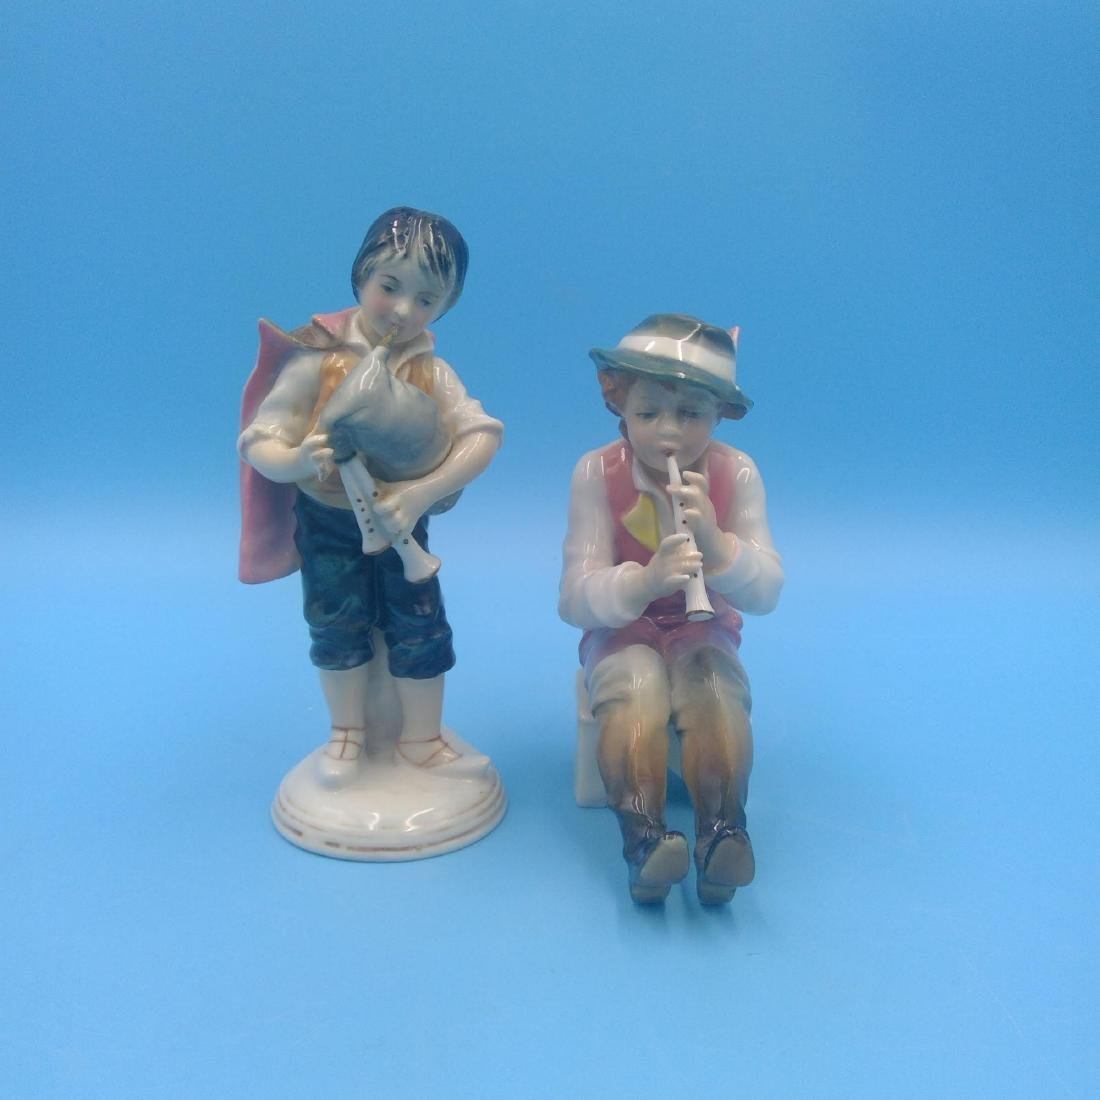 GROUP OF 2 KARL ENS MUSICIANS FIGURINES